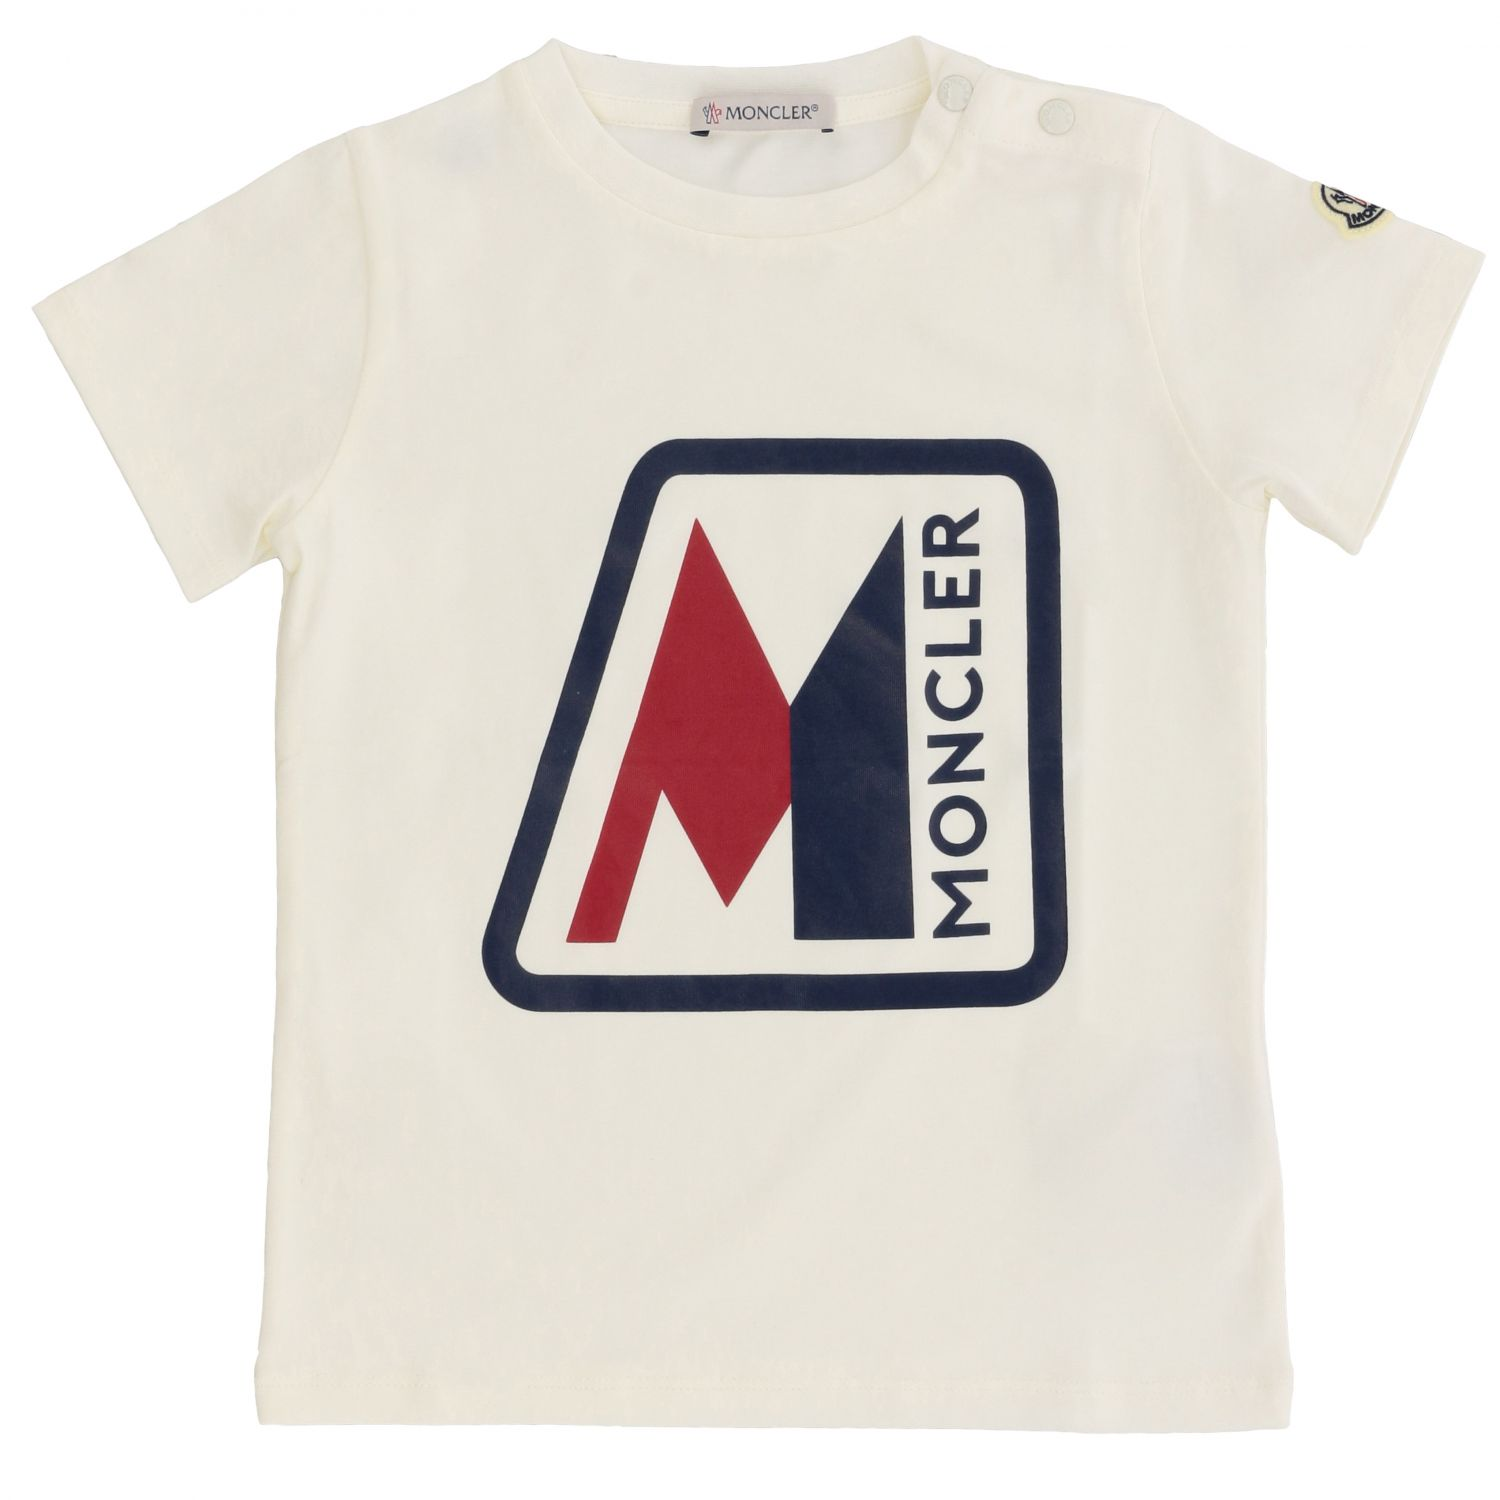 T-shirt kids Moncler white 1